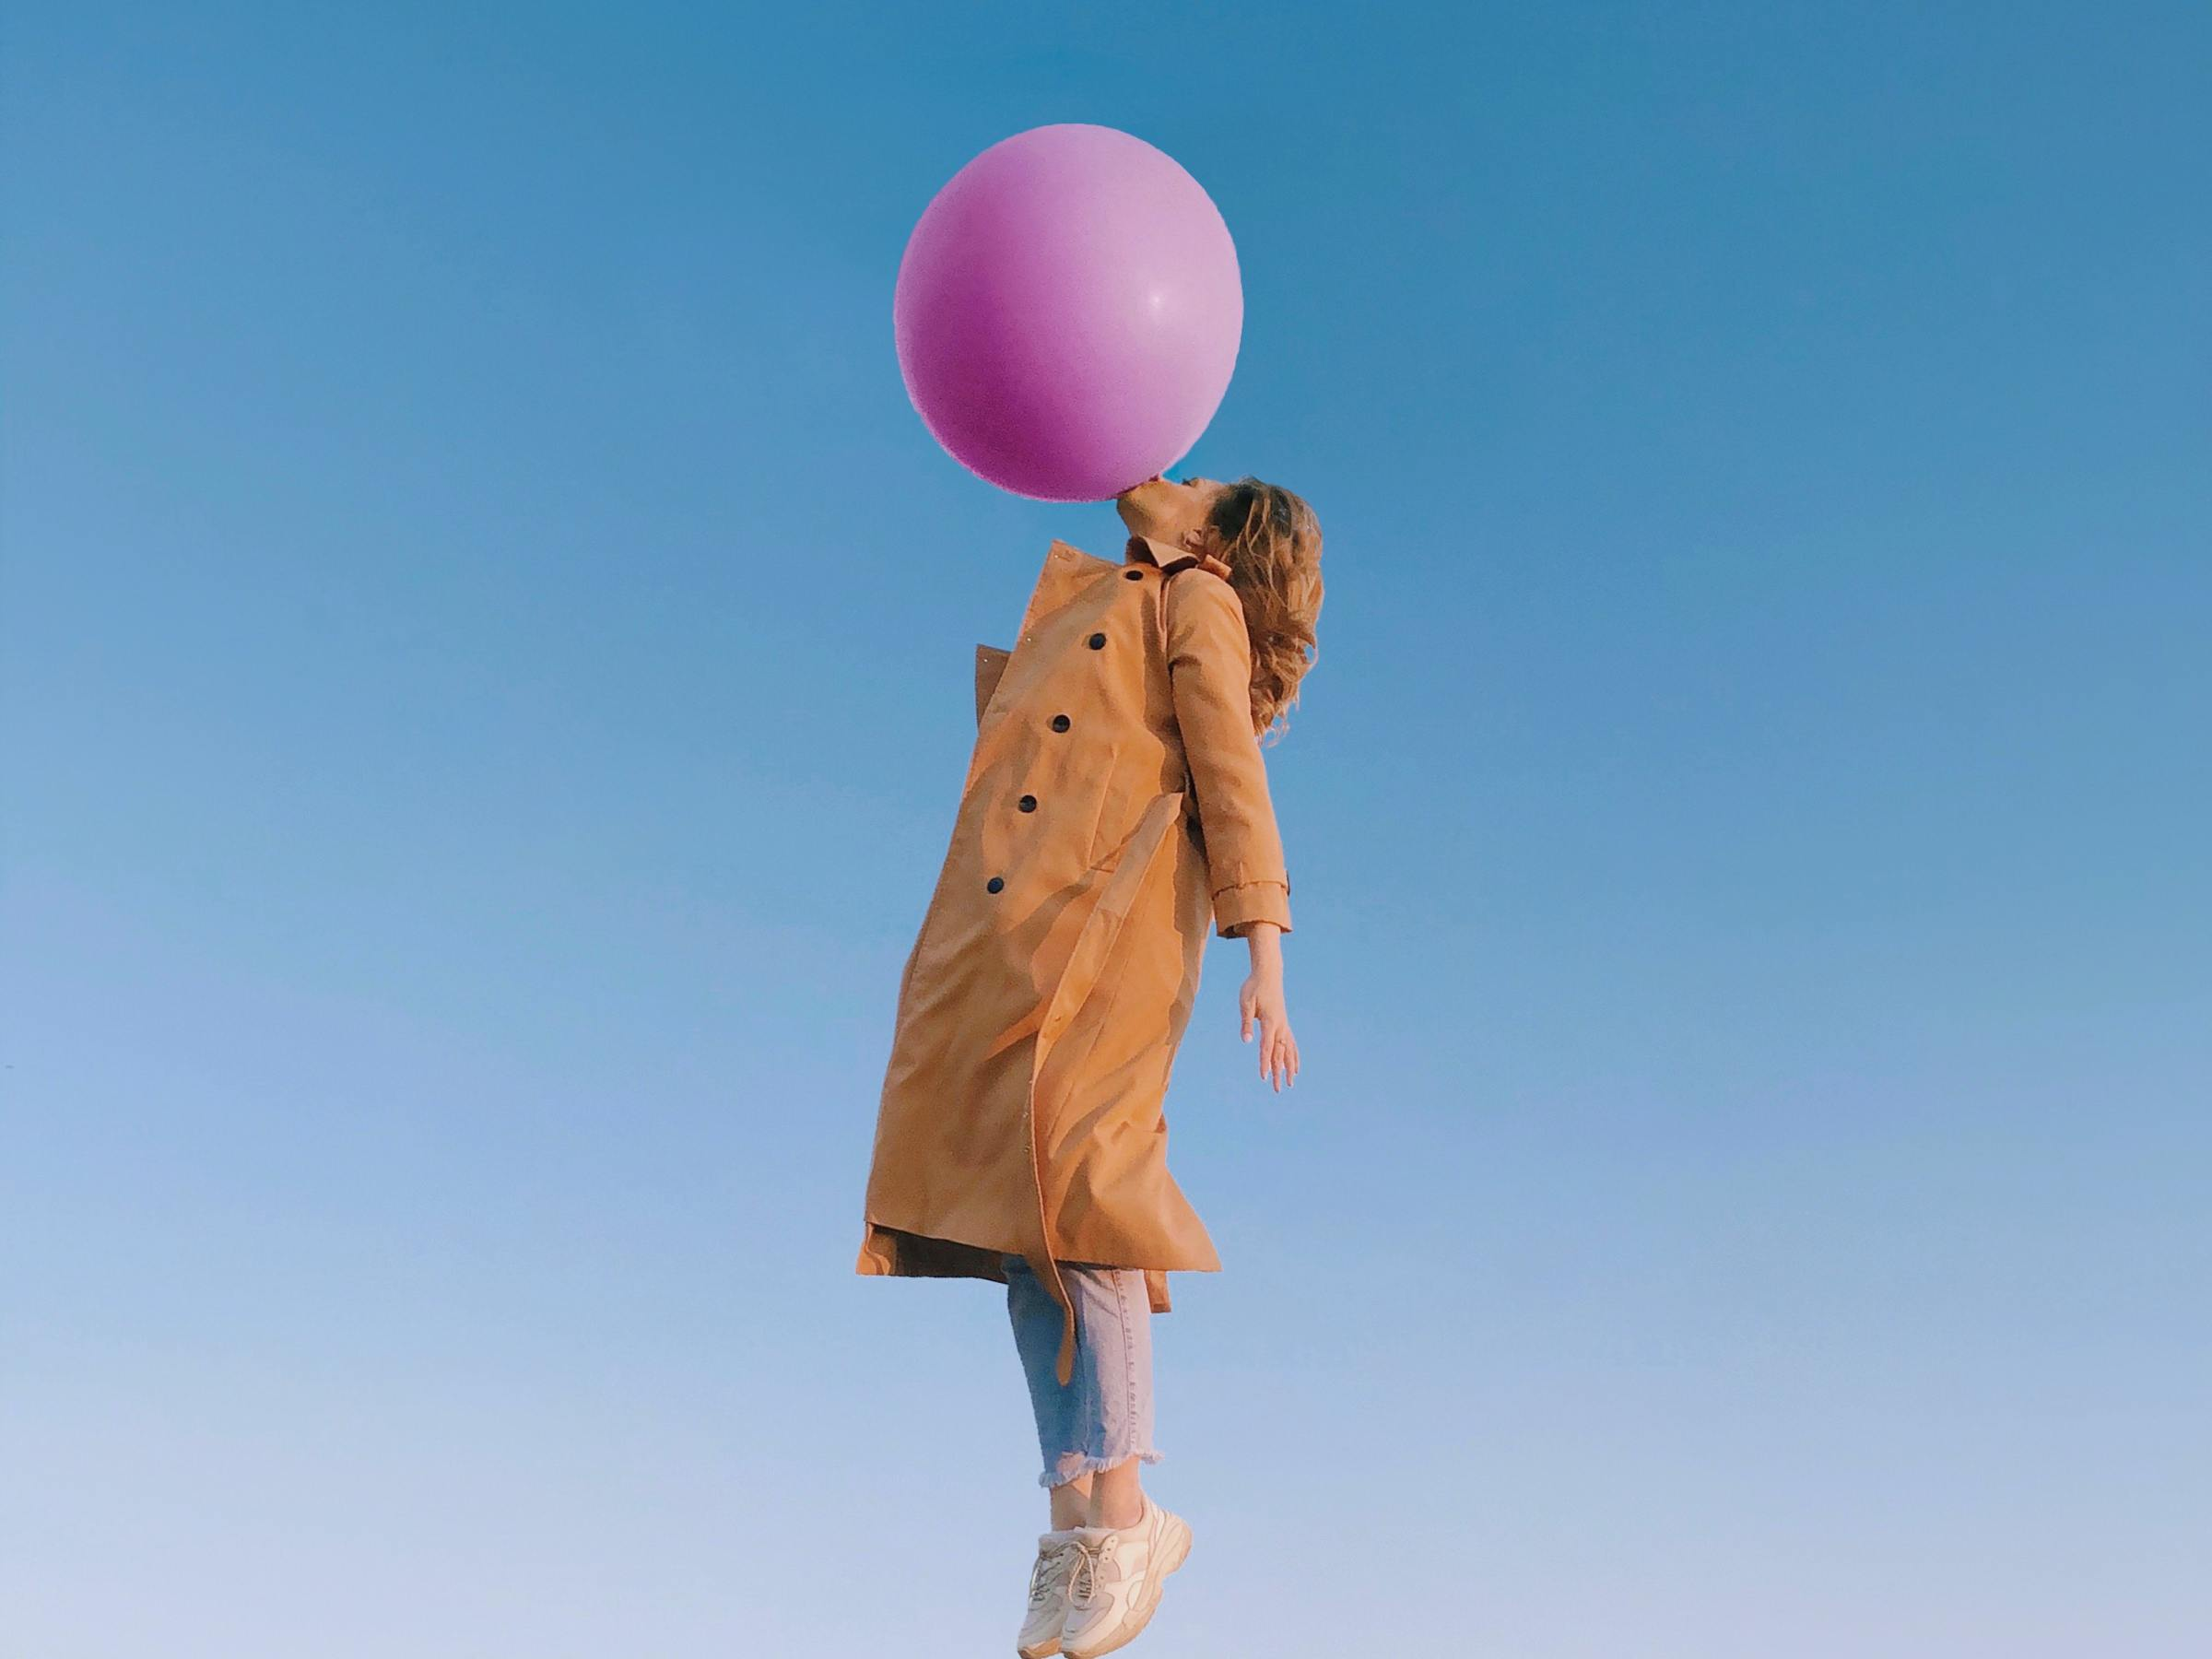 Woman in overcoat, jeans and tennis flying straight up with her mouth on a big pink balloon. She is ascending like Mary Poppins.